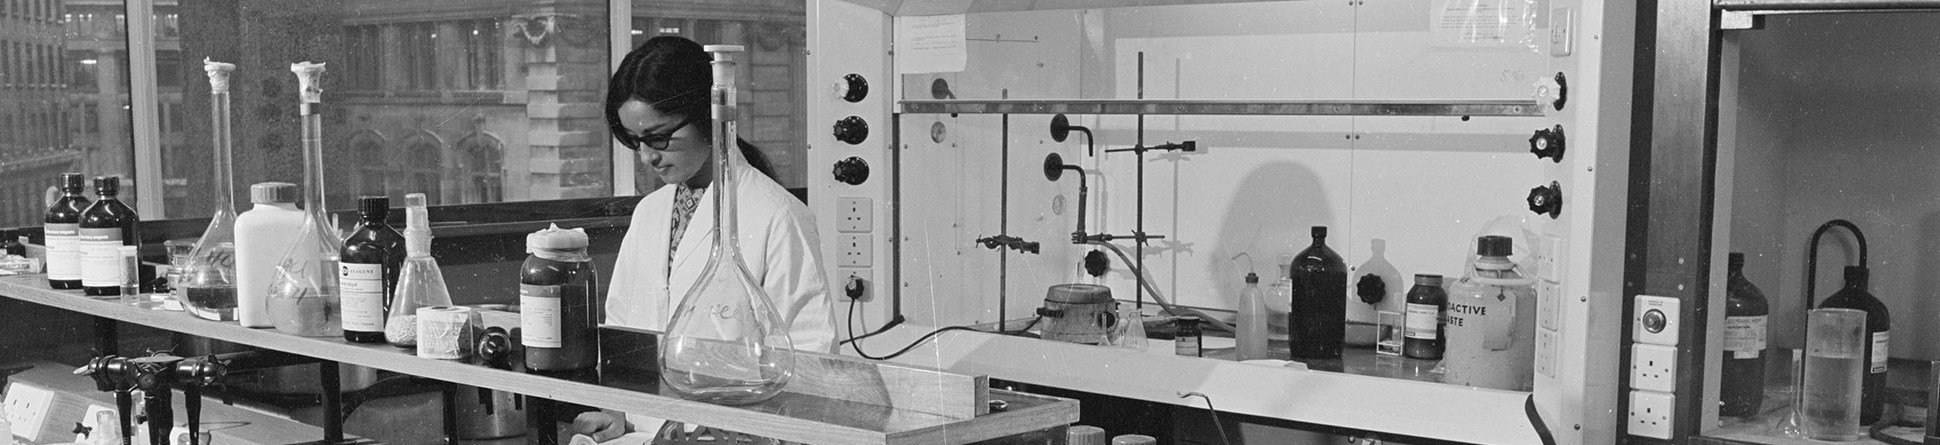 Black-and-white photograph of a female scientist at work in a laboratory at King's College London